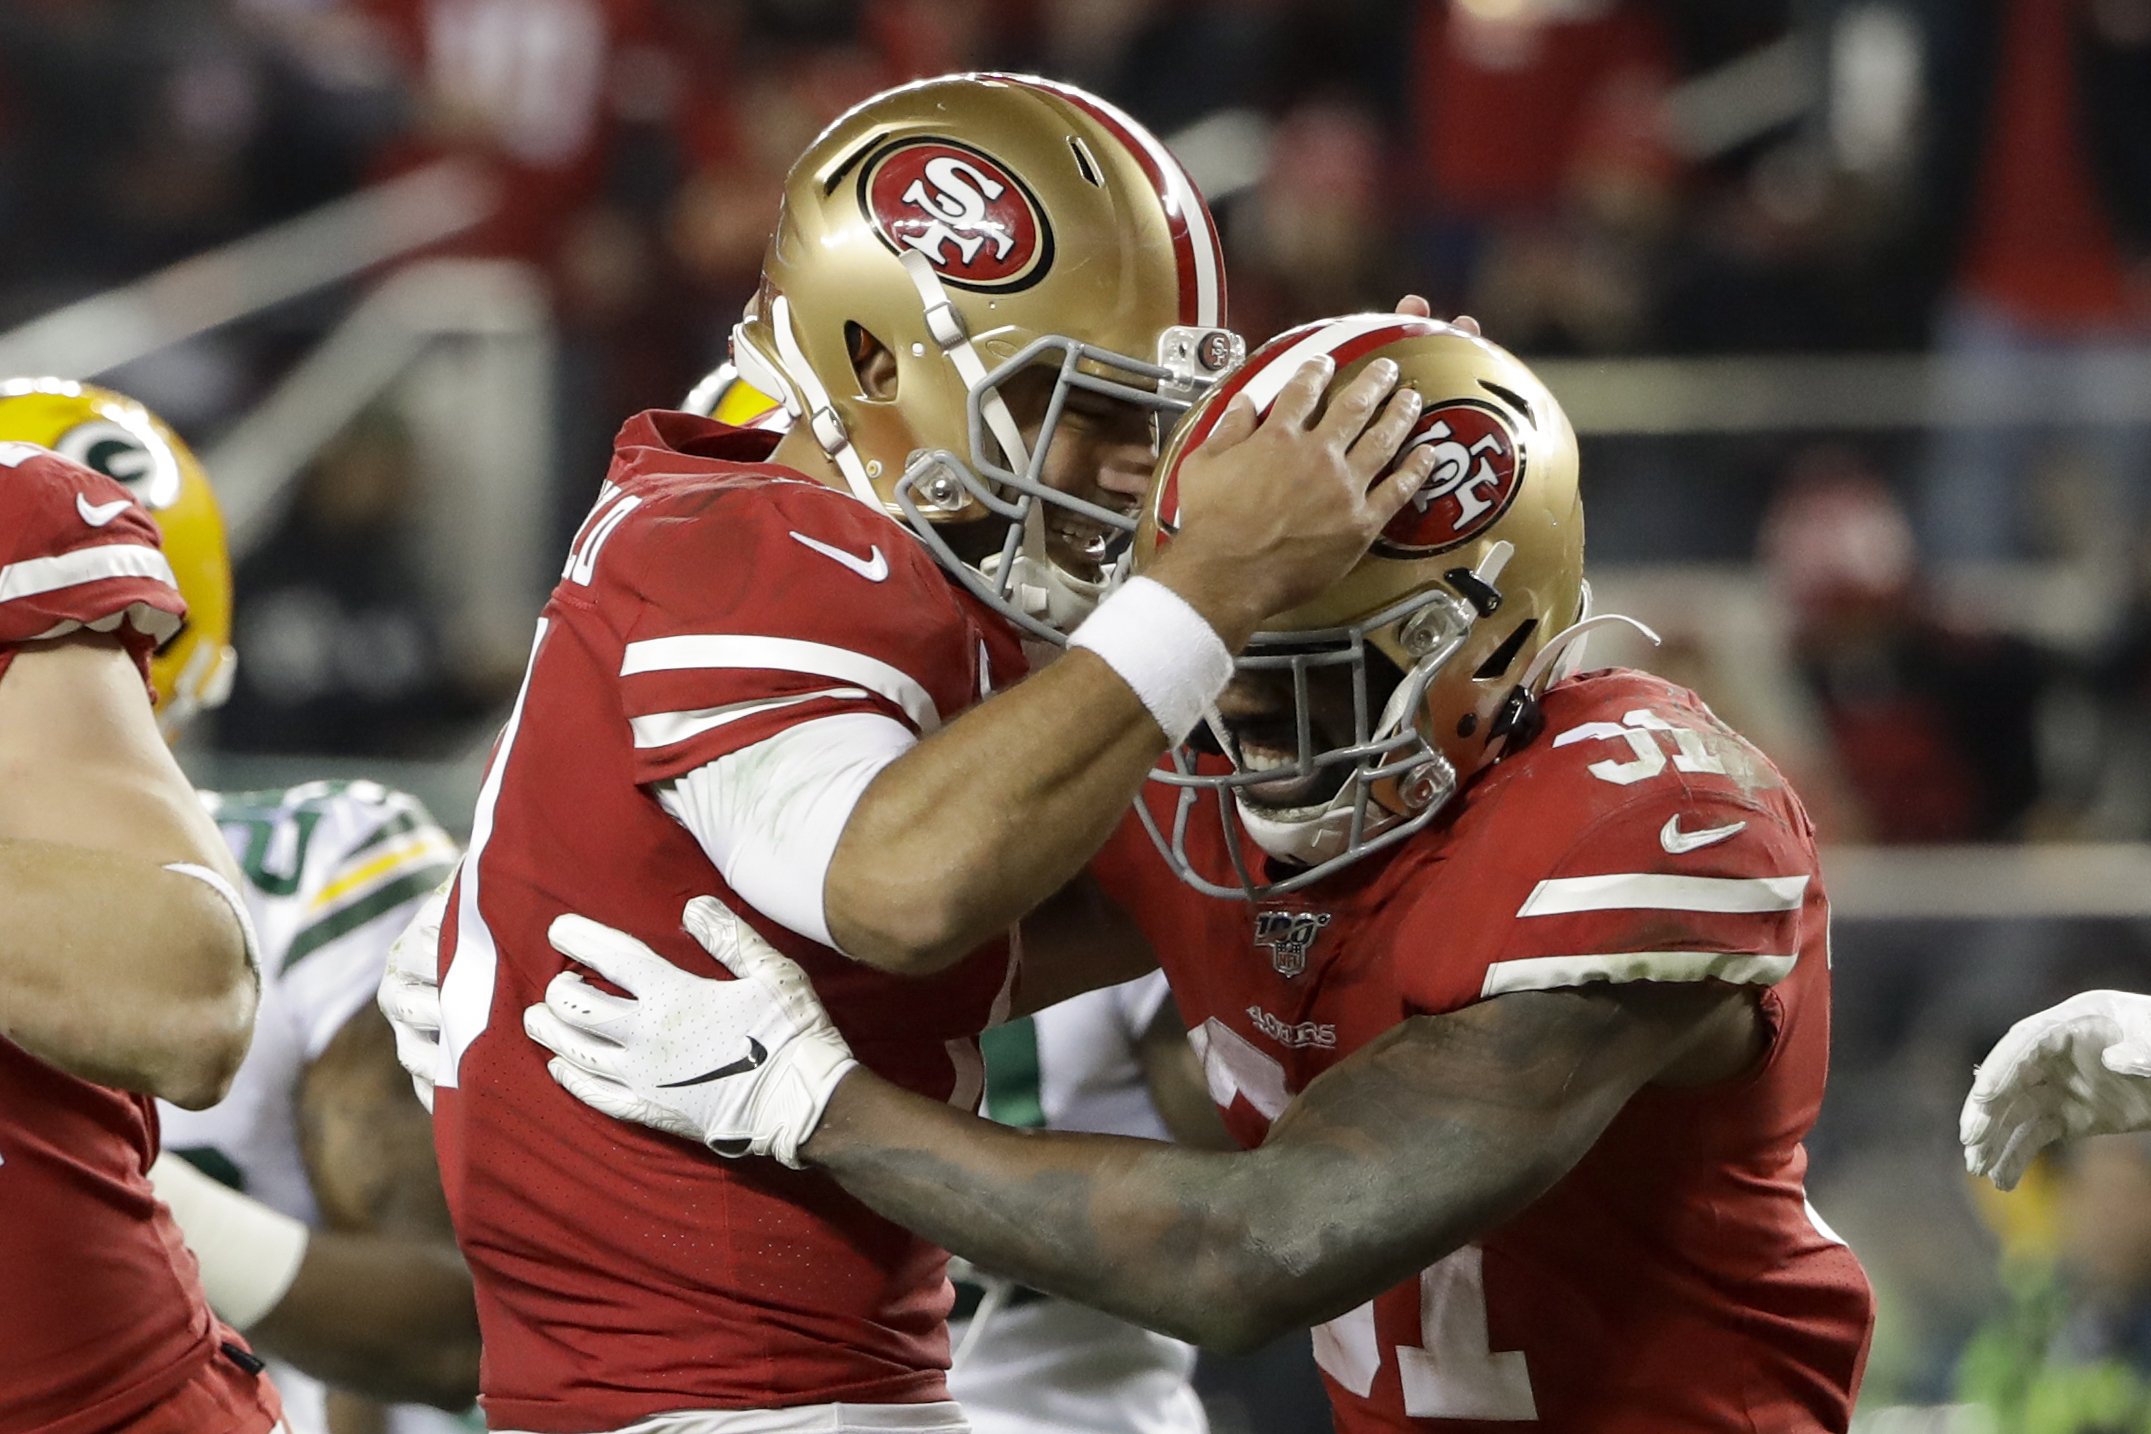 San Francisco 49ers running back Raheem Mostert, right, celebrates his touchdown with quarterback Jimmy Garoppolo during the second half of the NFL NFC Championship football game against the Green Bay Packers Sunday, Jan. 19, 2020, in Santa Clara, Calif. (AP Photo/Marcio Jose Sanchez)